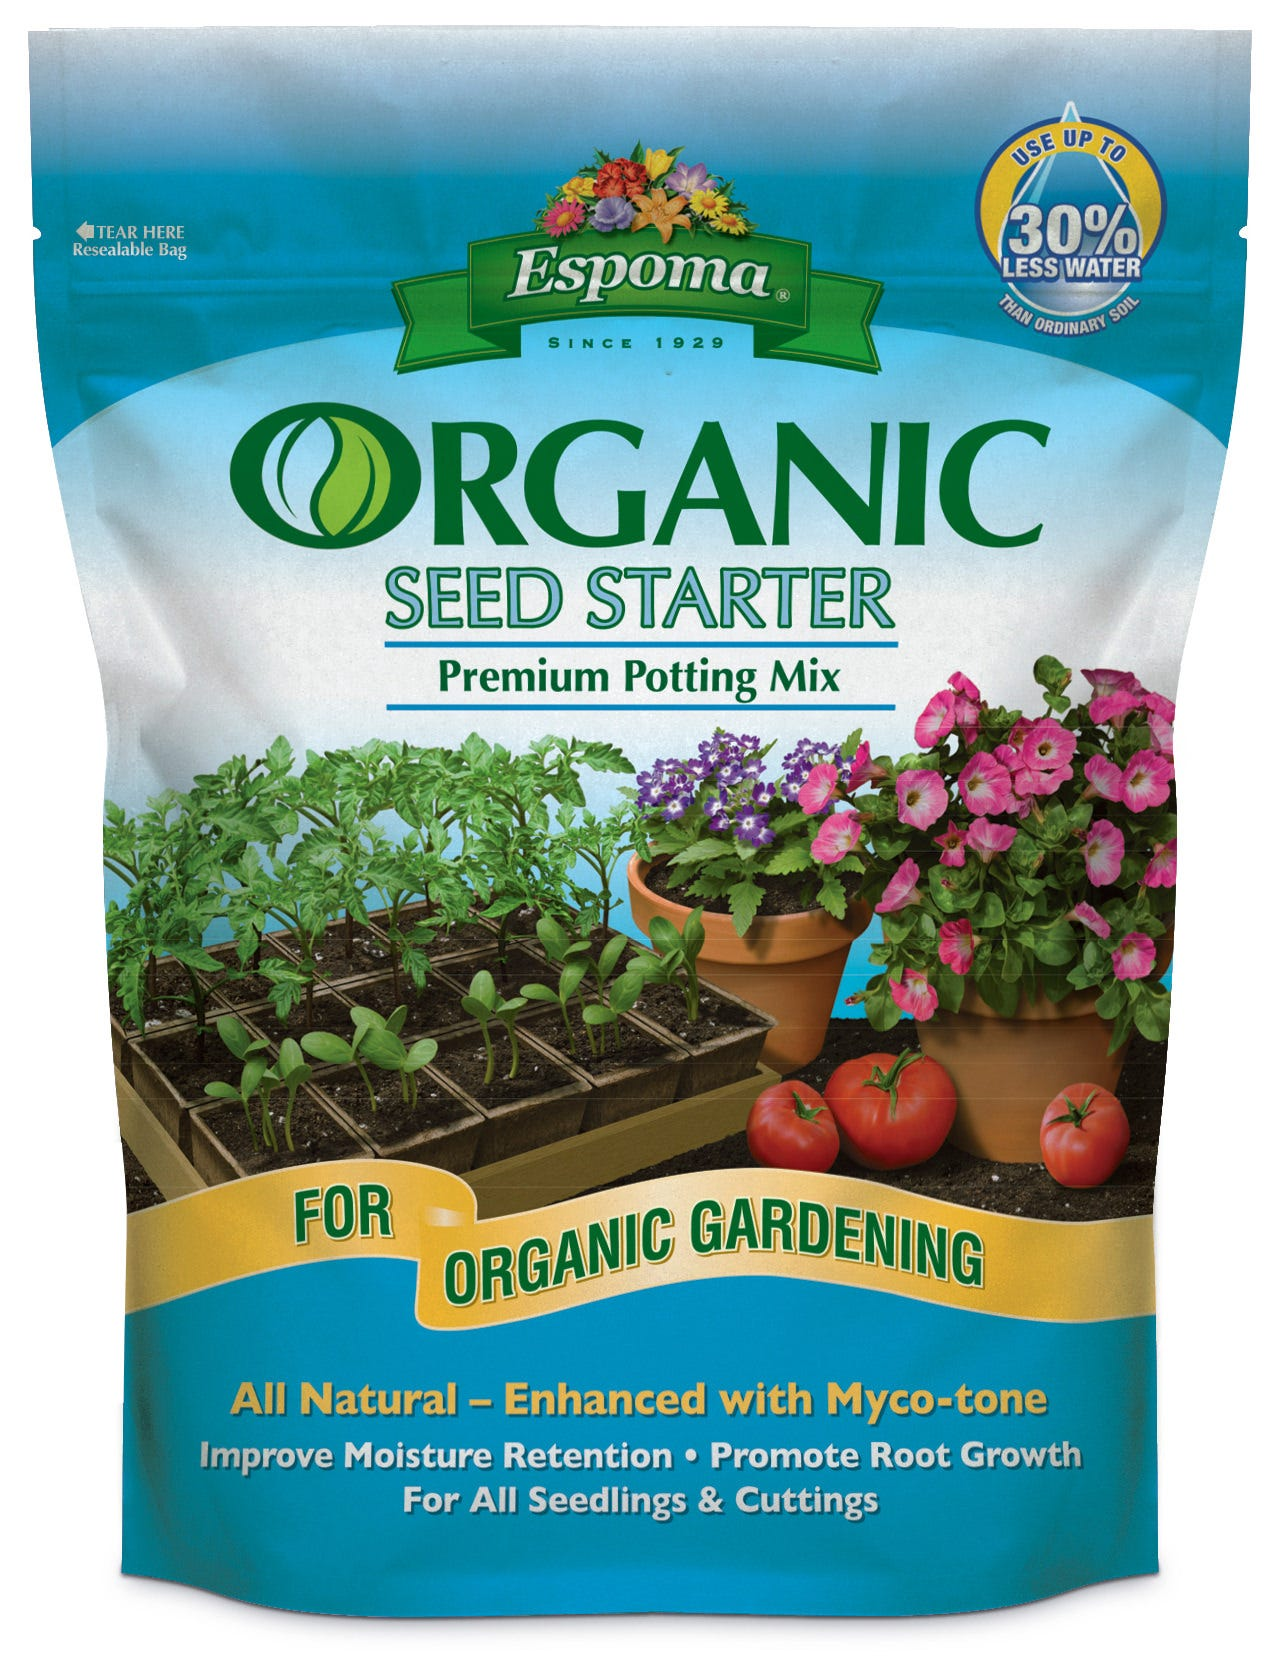 Espoma Organic Seed Starting Mix 8 QT Seed Starting, Seedling, Seedstarting Supplies, Gardening, Seed-Starting, Garden